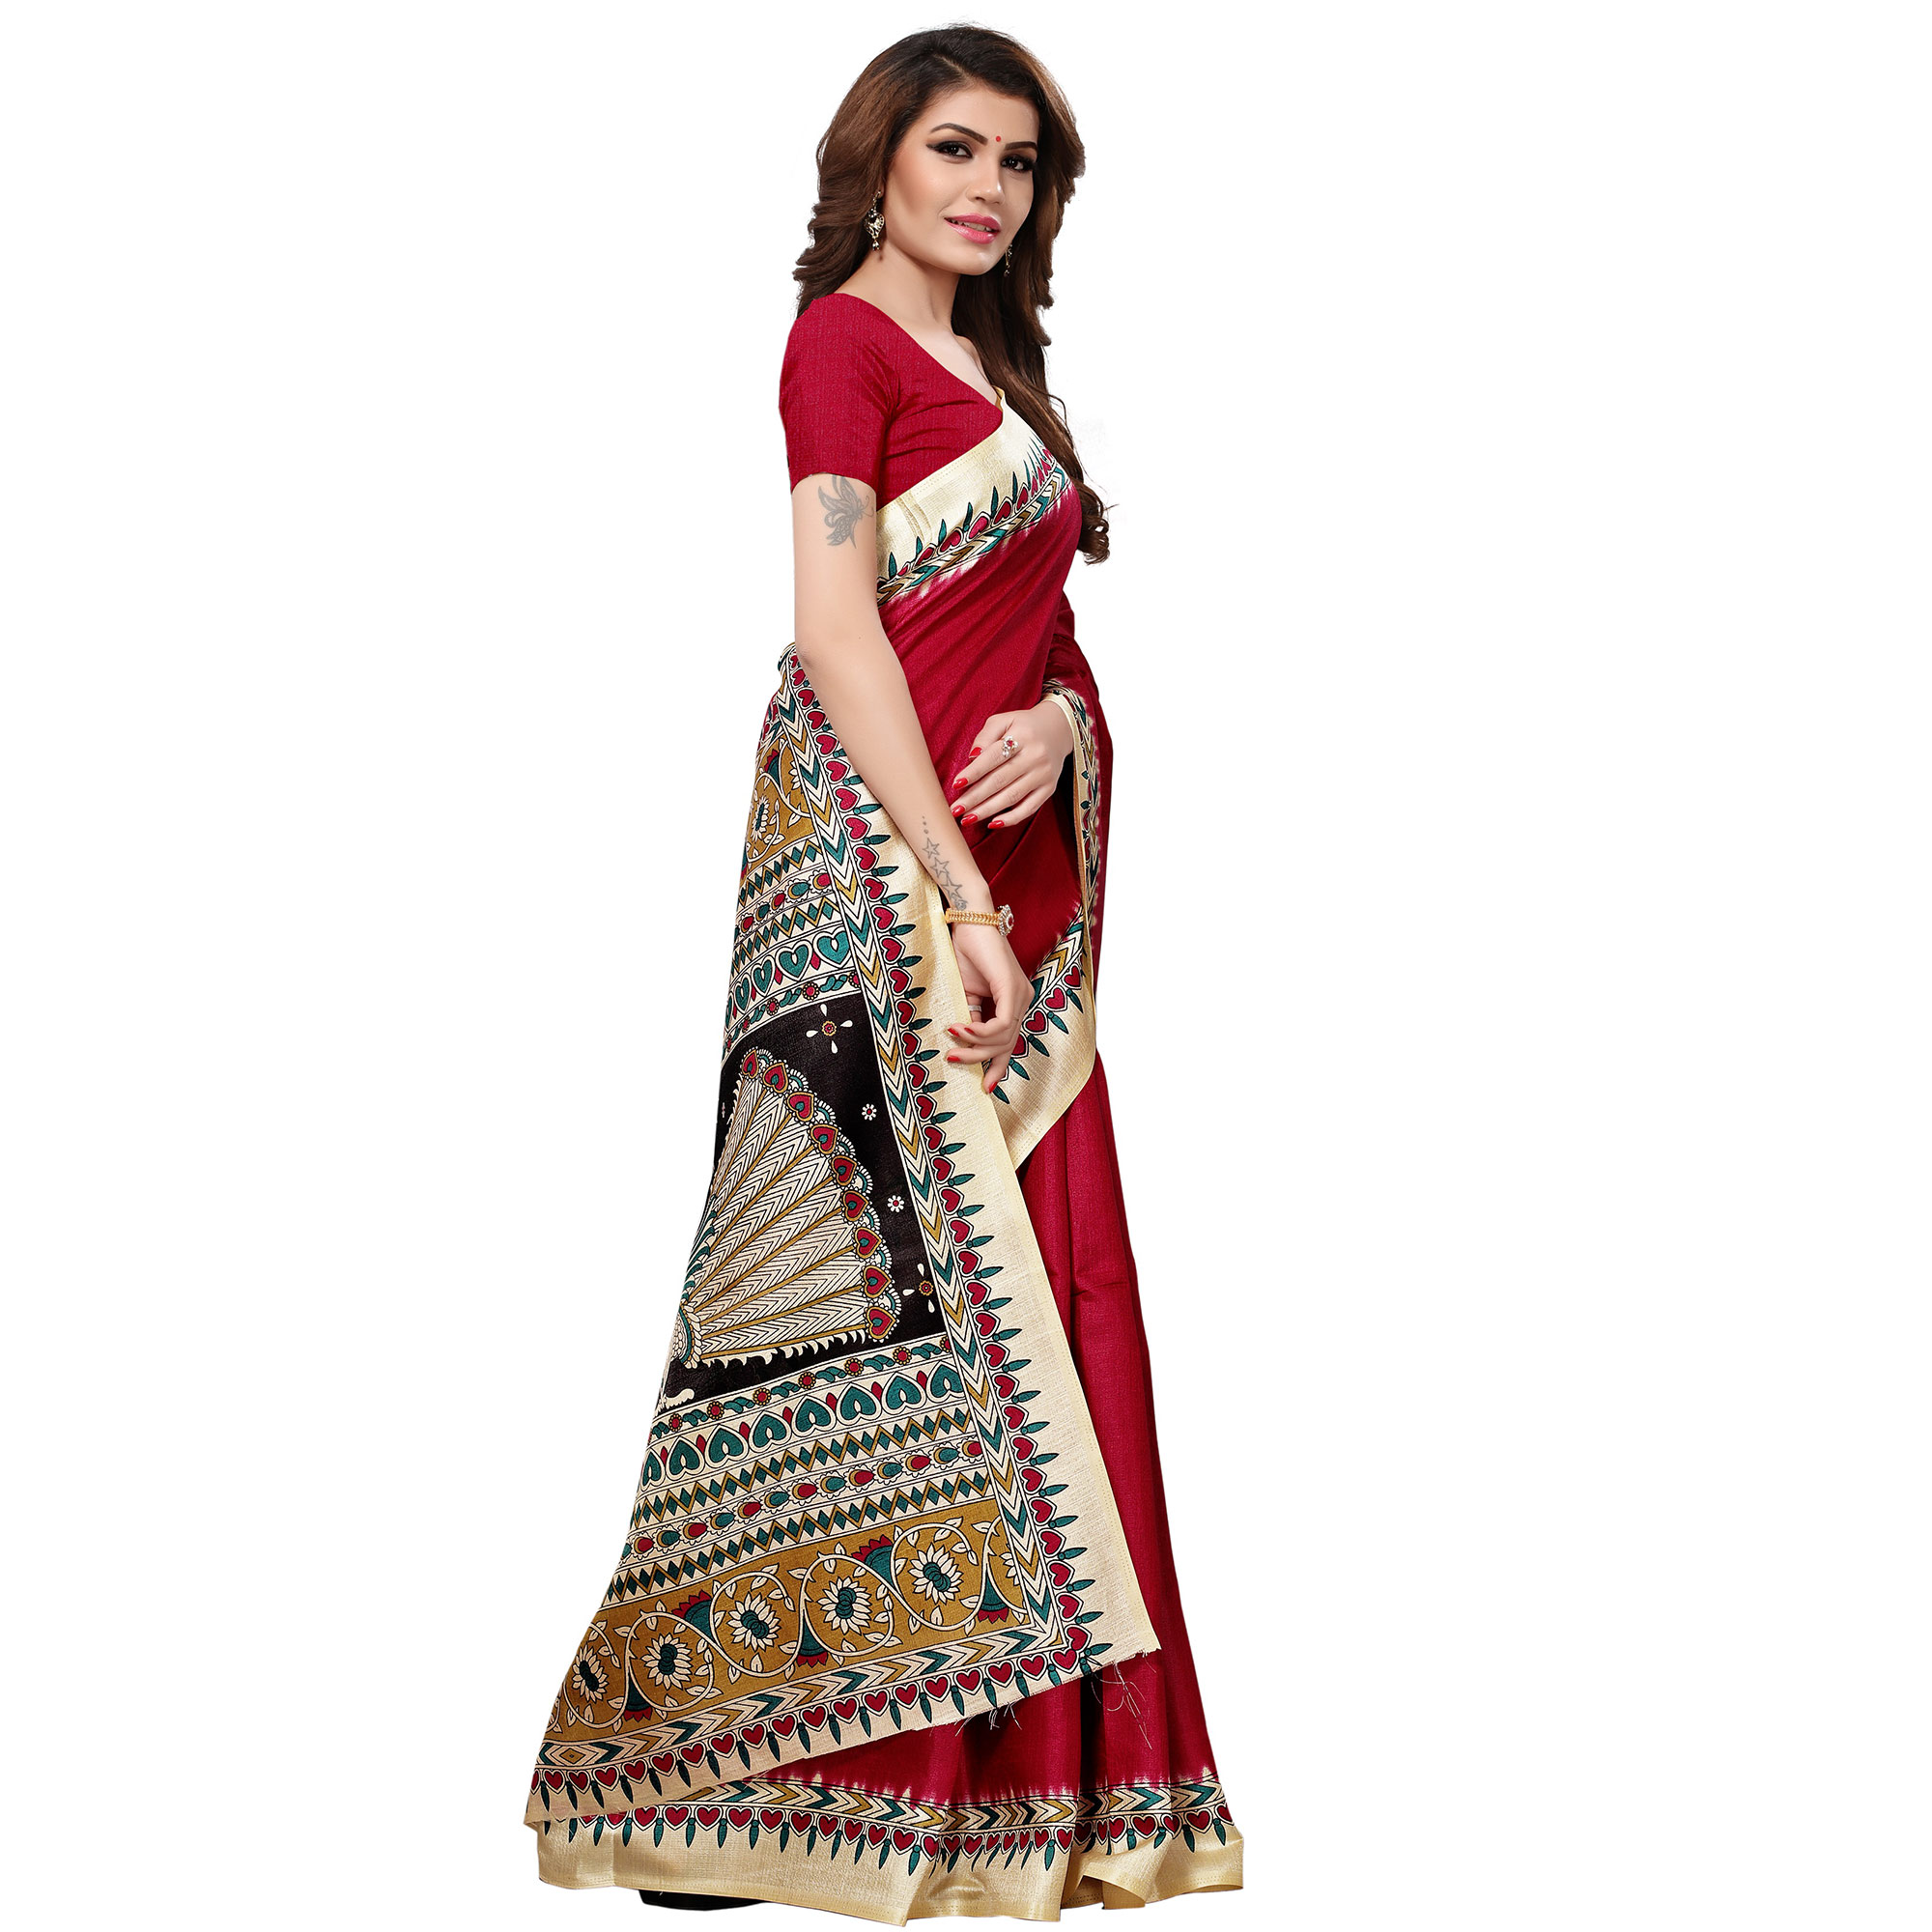 Entrancing Red Colored Casual Printed Khadi Silk Saree